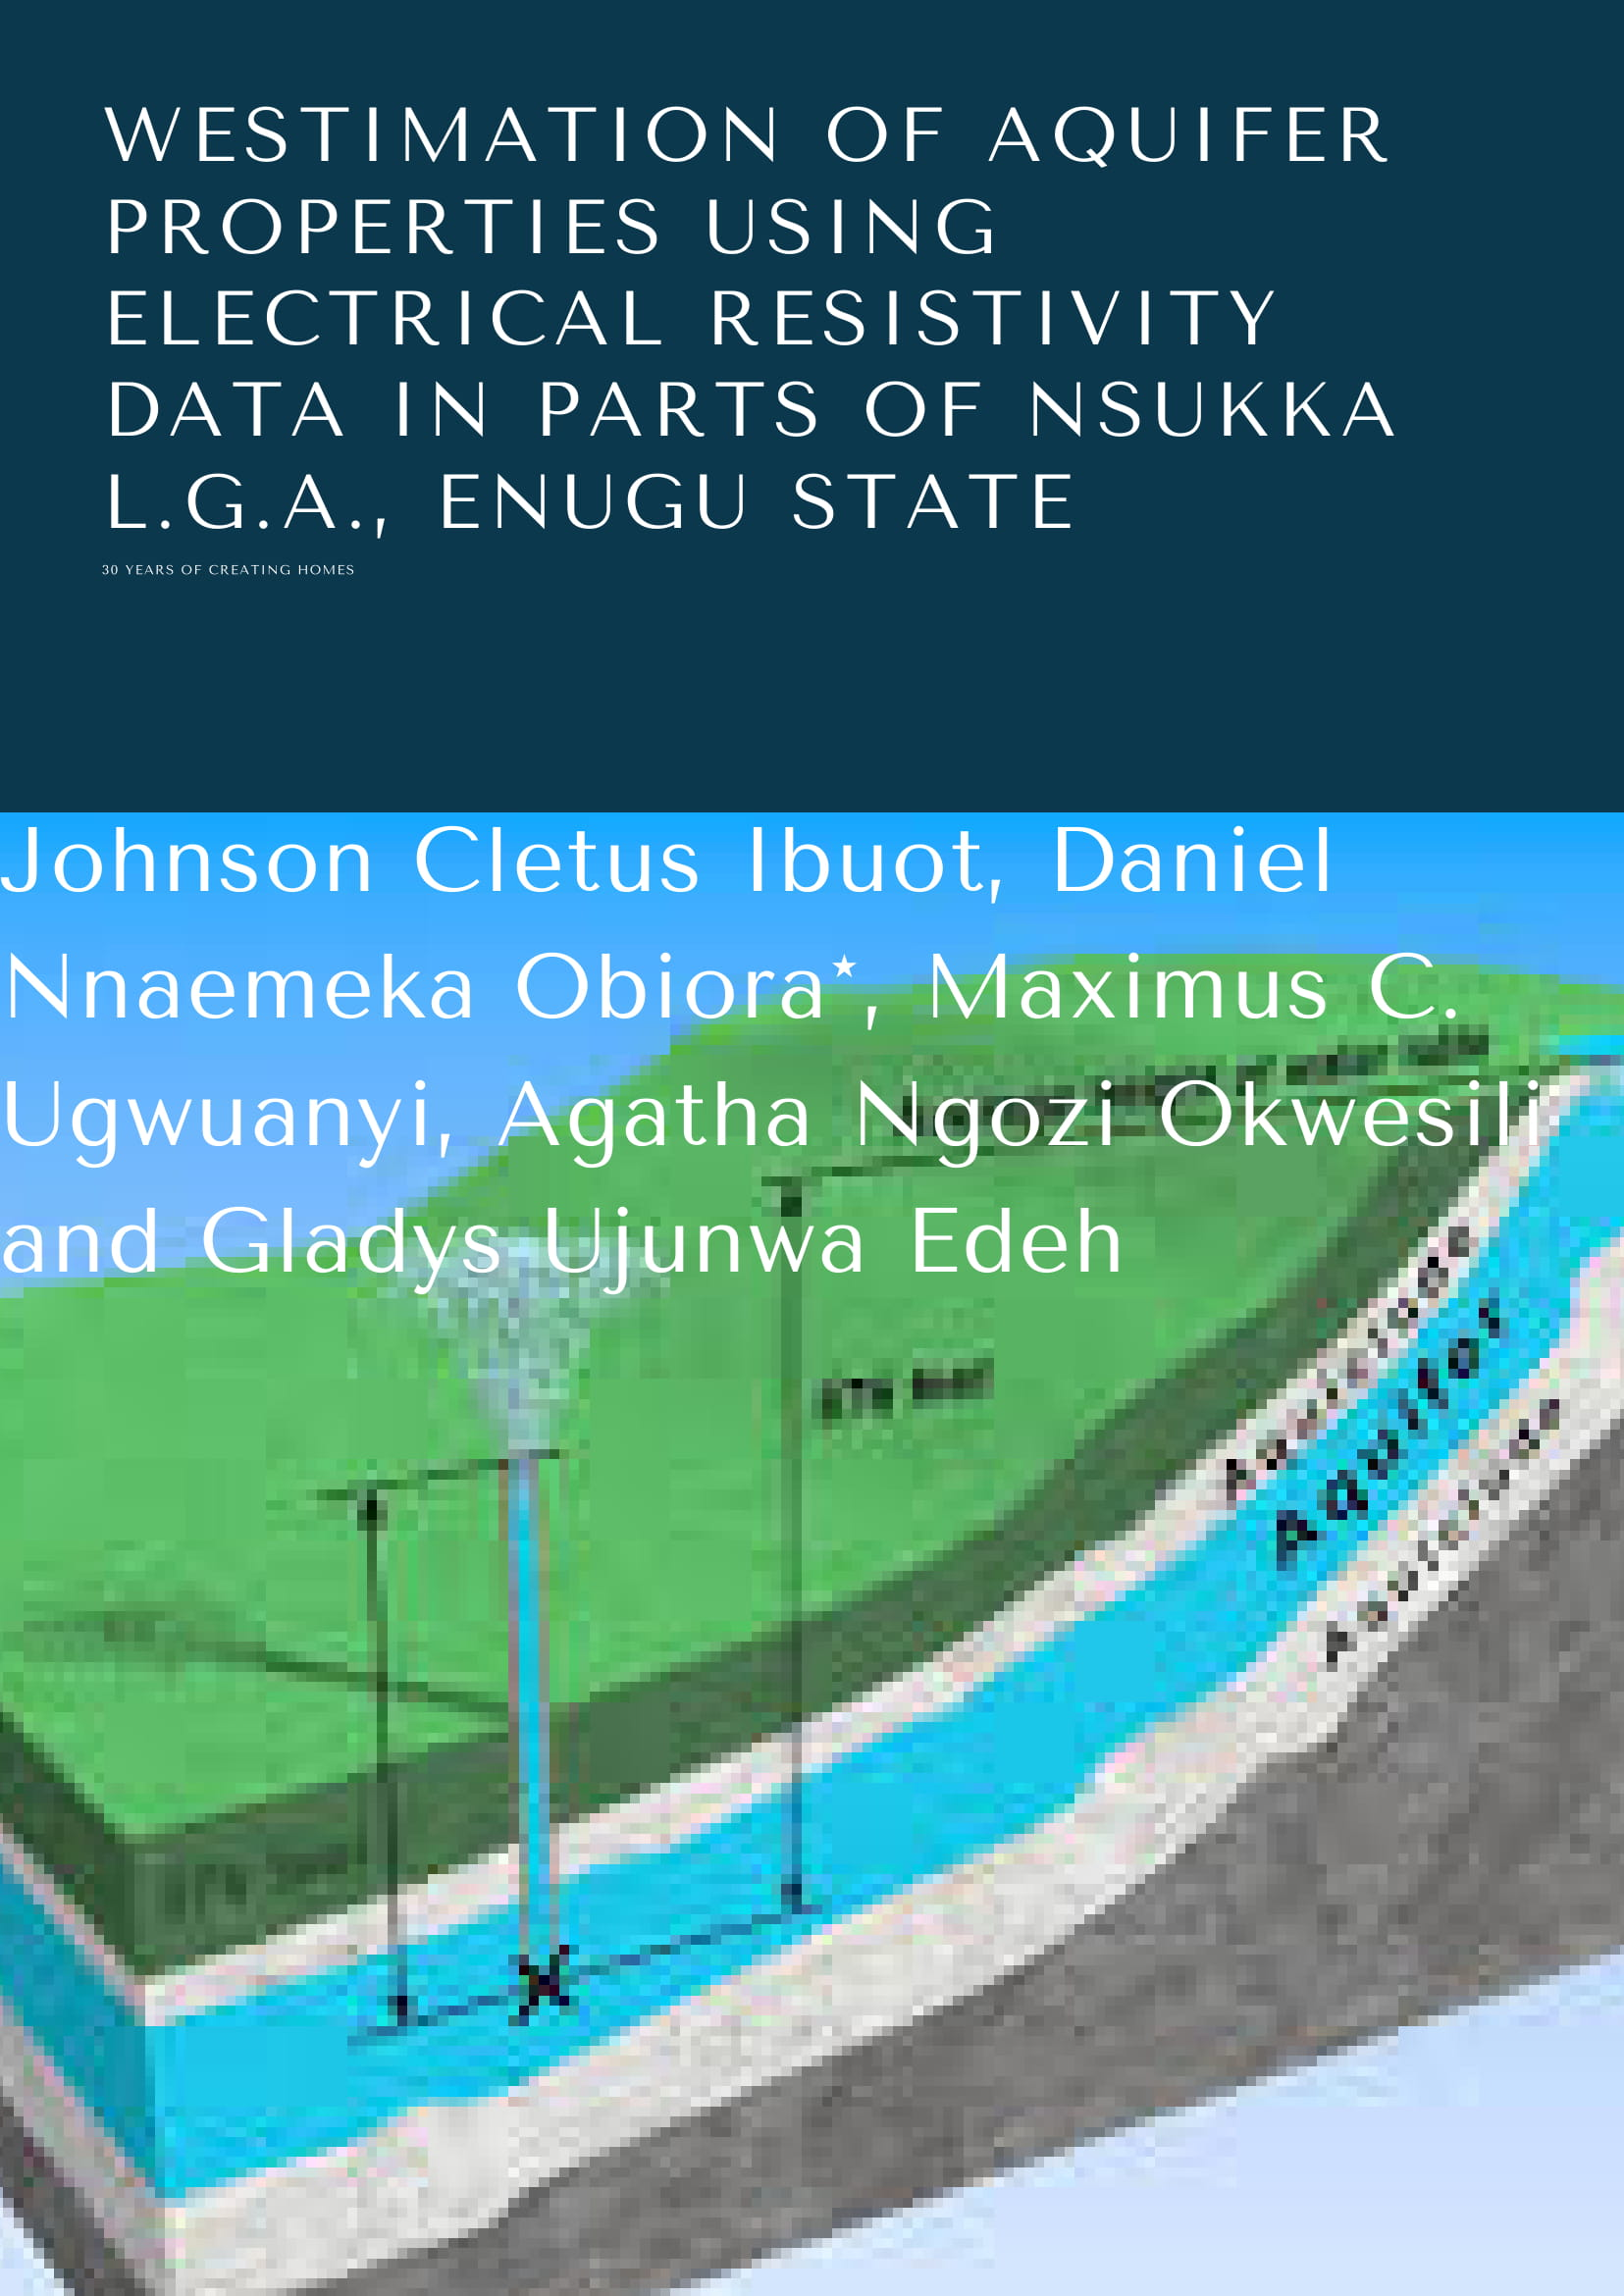 Estimation of aquifer properties using electrical resistivity data in parts of Nsukka L.G.A., Enugu State image